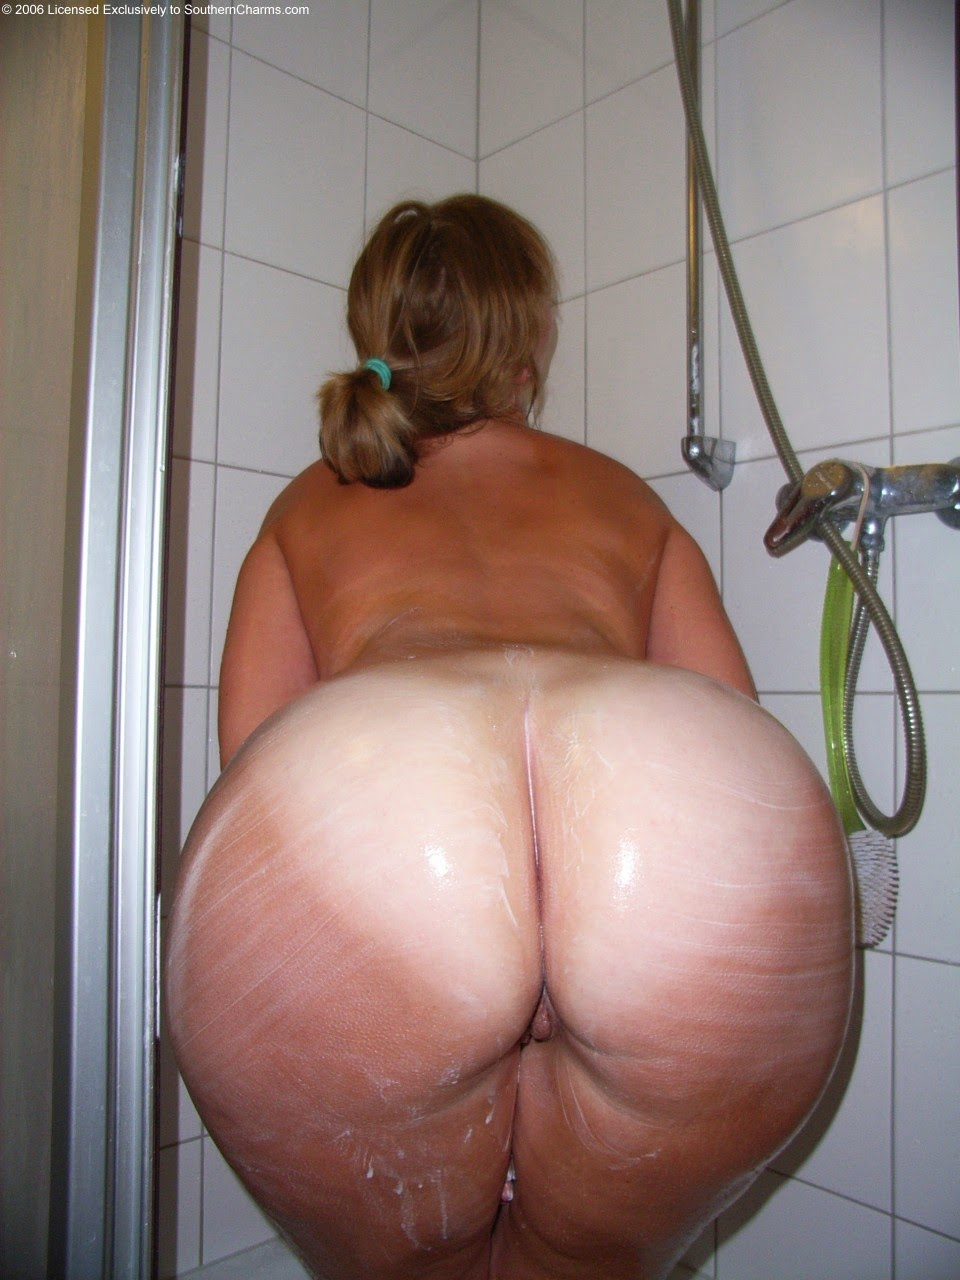 Agree sorry, Big butt cherie southern charms think